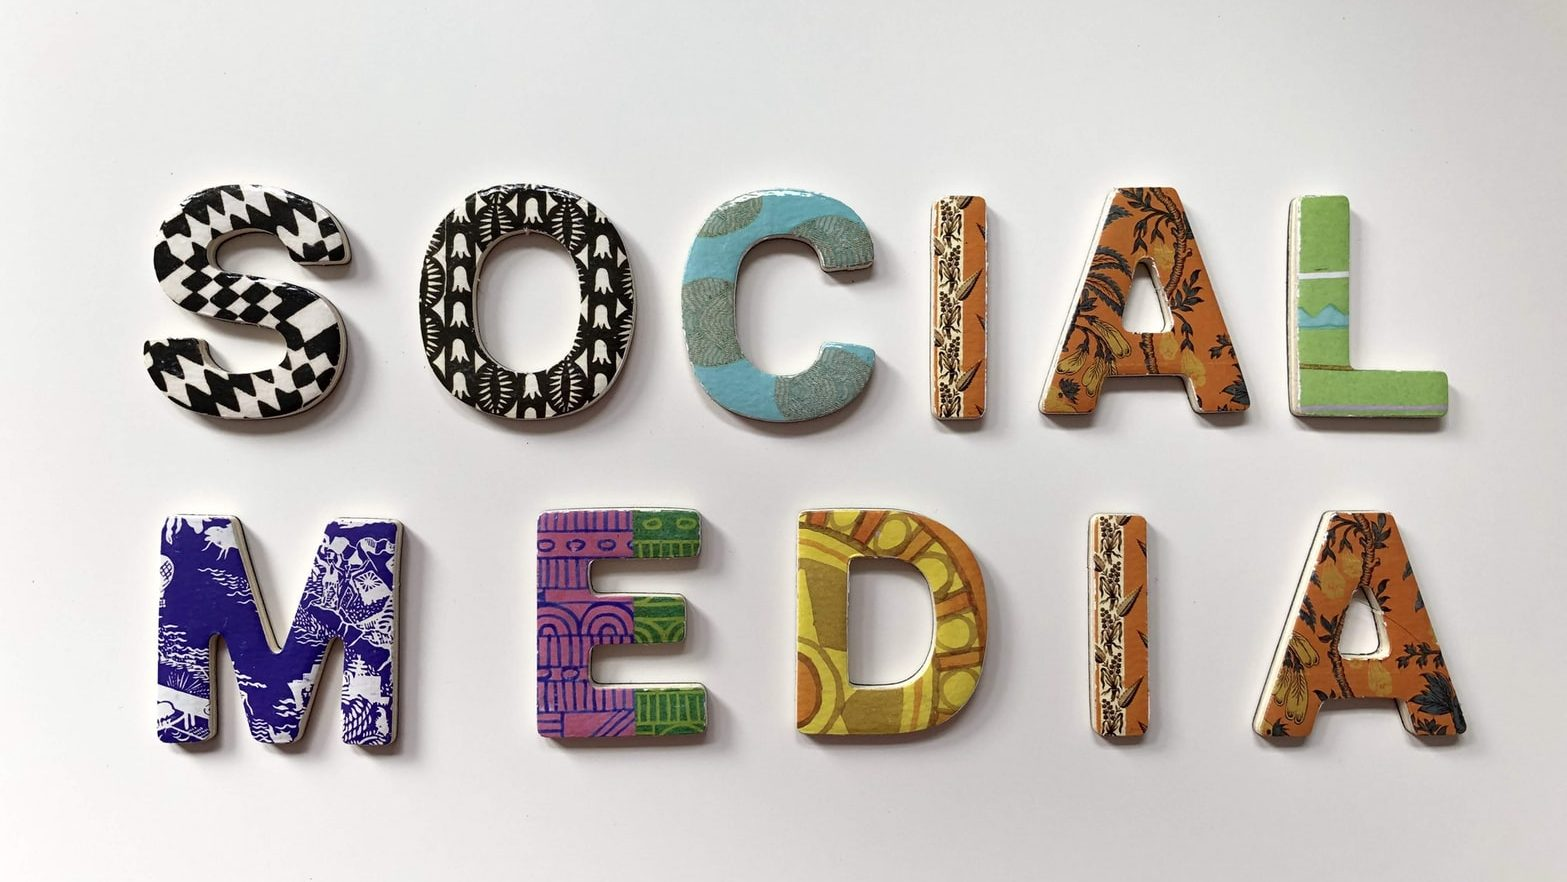 colourful ceramic letters forming the words: Social Media